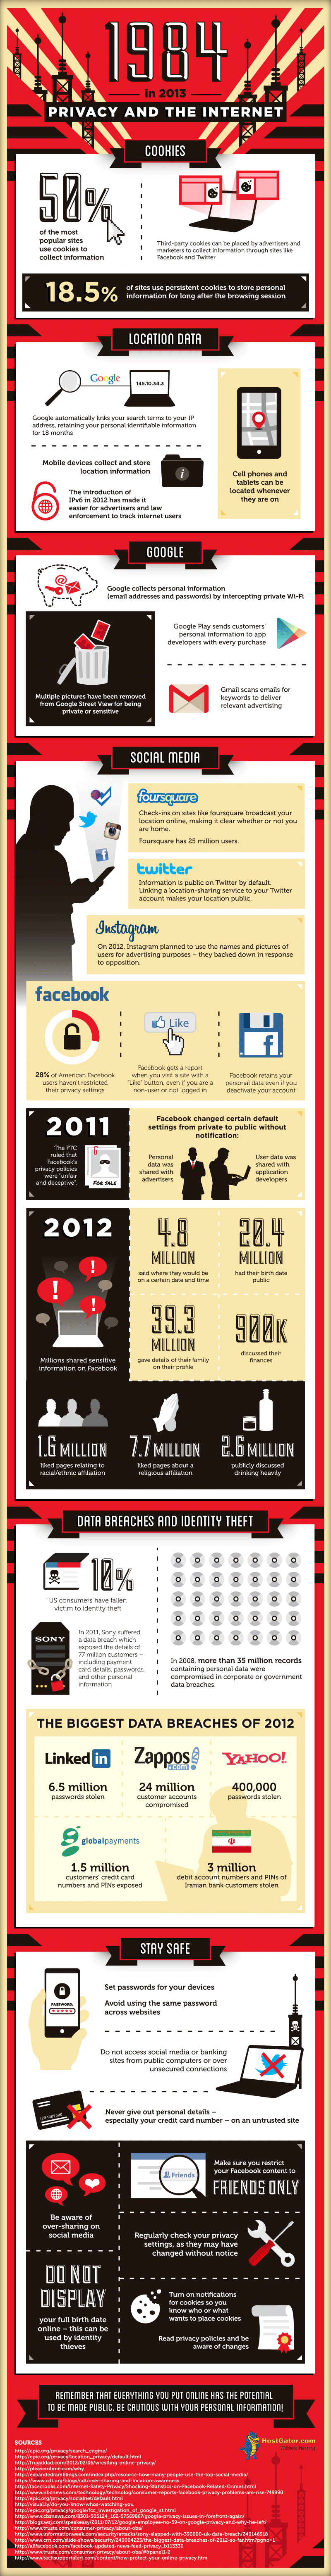 The Worrying State Of Internet Privacy In 2013 [Infographic]